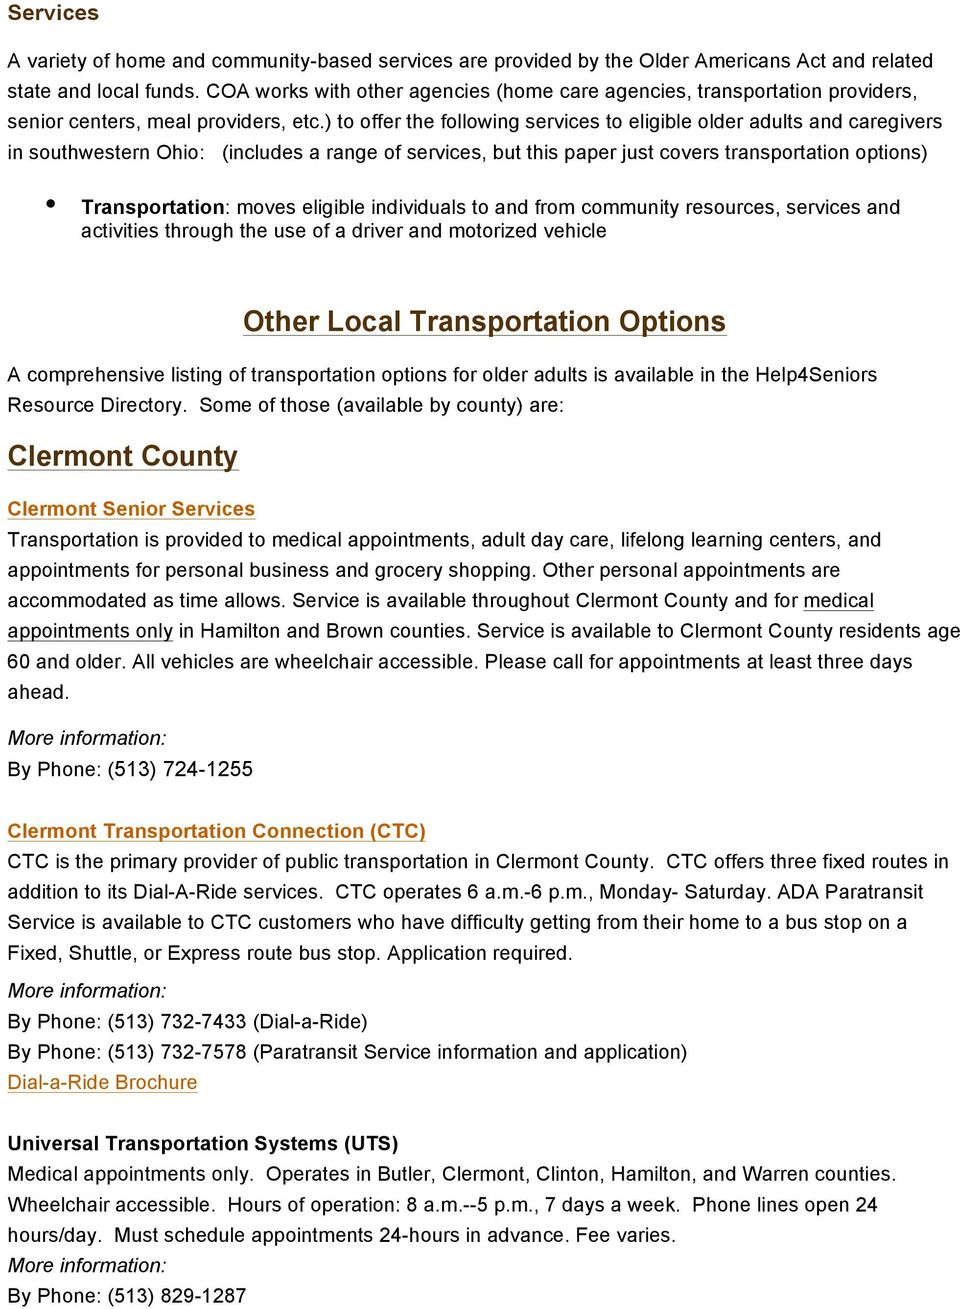 ) to offer the following services to eligible older adults and caregivers in southwestern Ohio: (includes a range of services, but this paper just covers transportation options) Transportation: moves